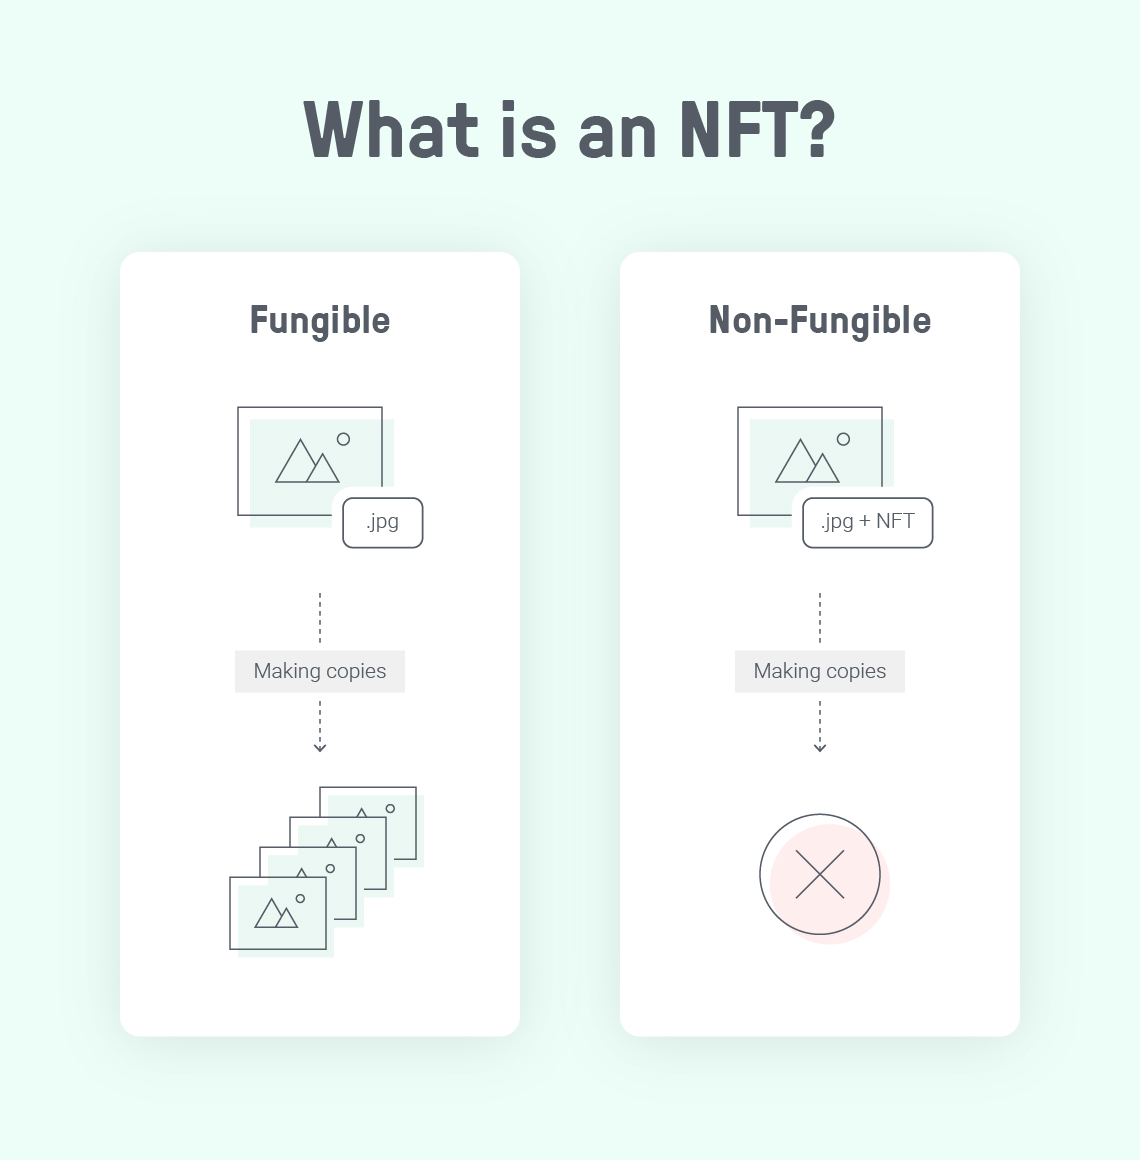 Image showing the difference between an NFT and another digital item